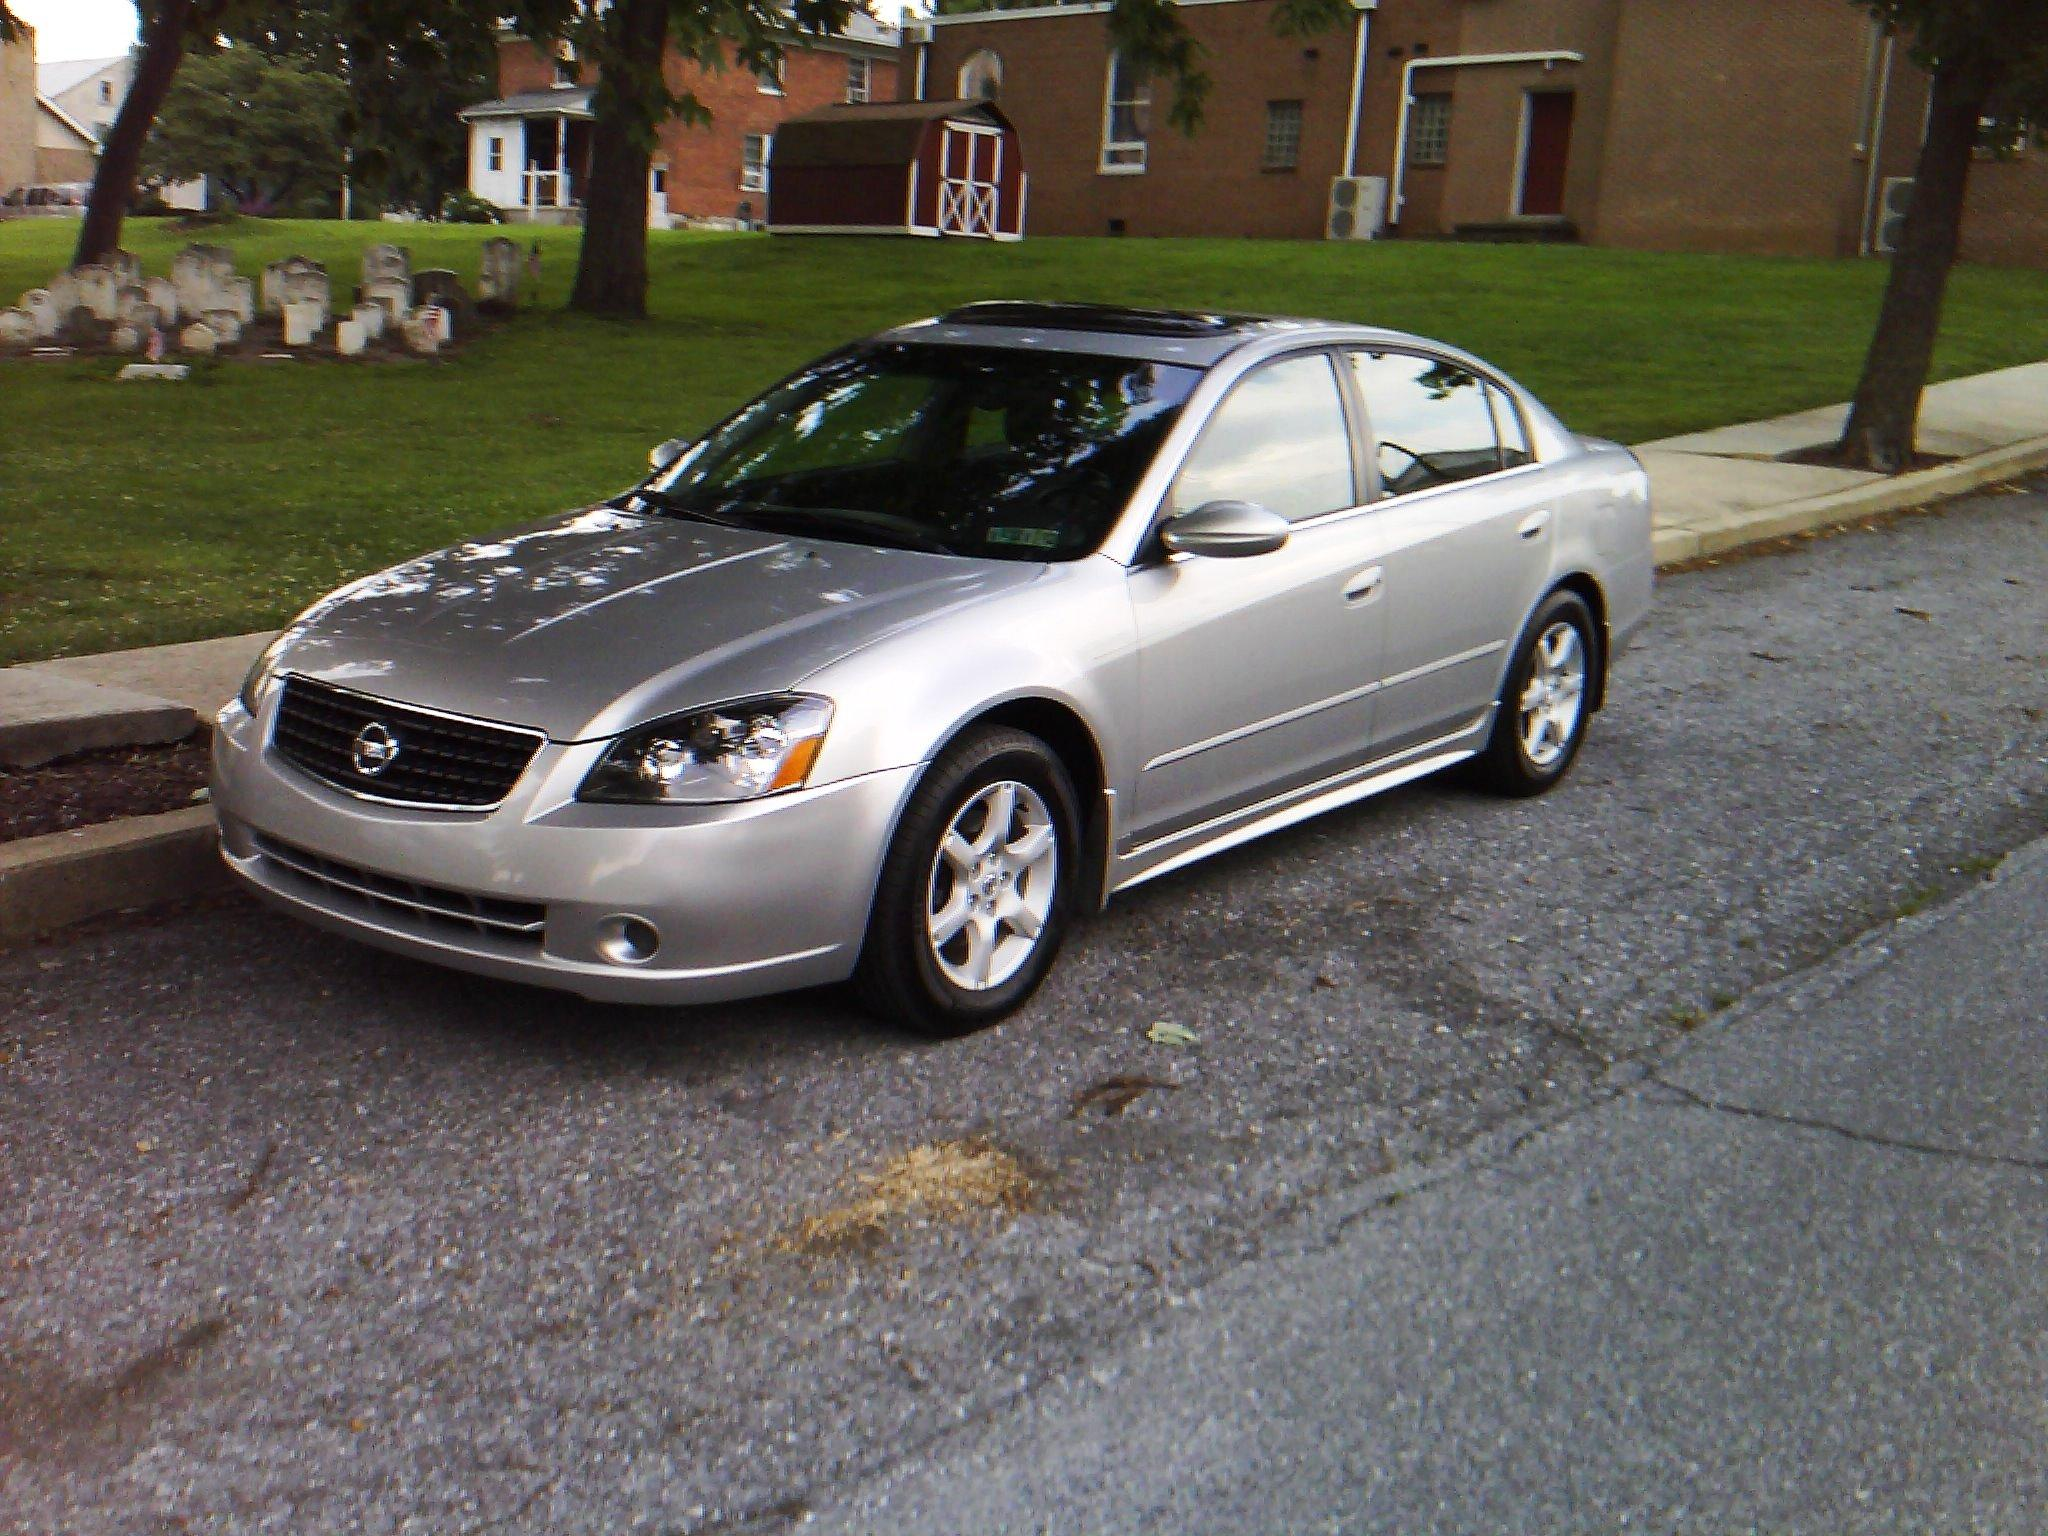 Nissan Altima 2.5S >> tigerwolf007 2006 Nissan Altima2.5 S Sedan 4D Specs ...